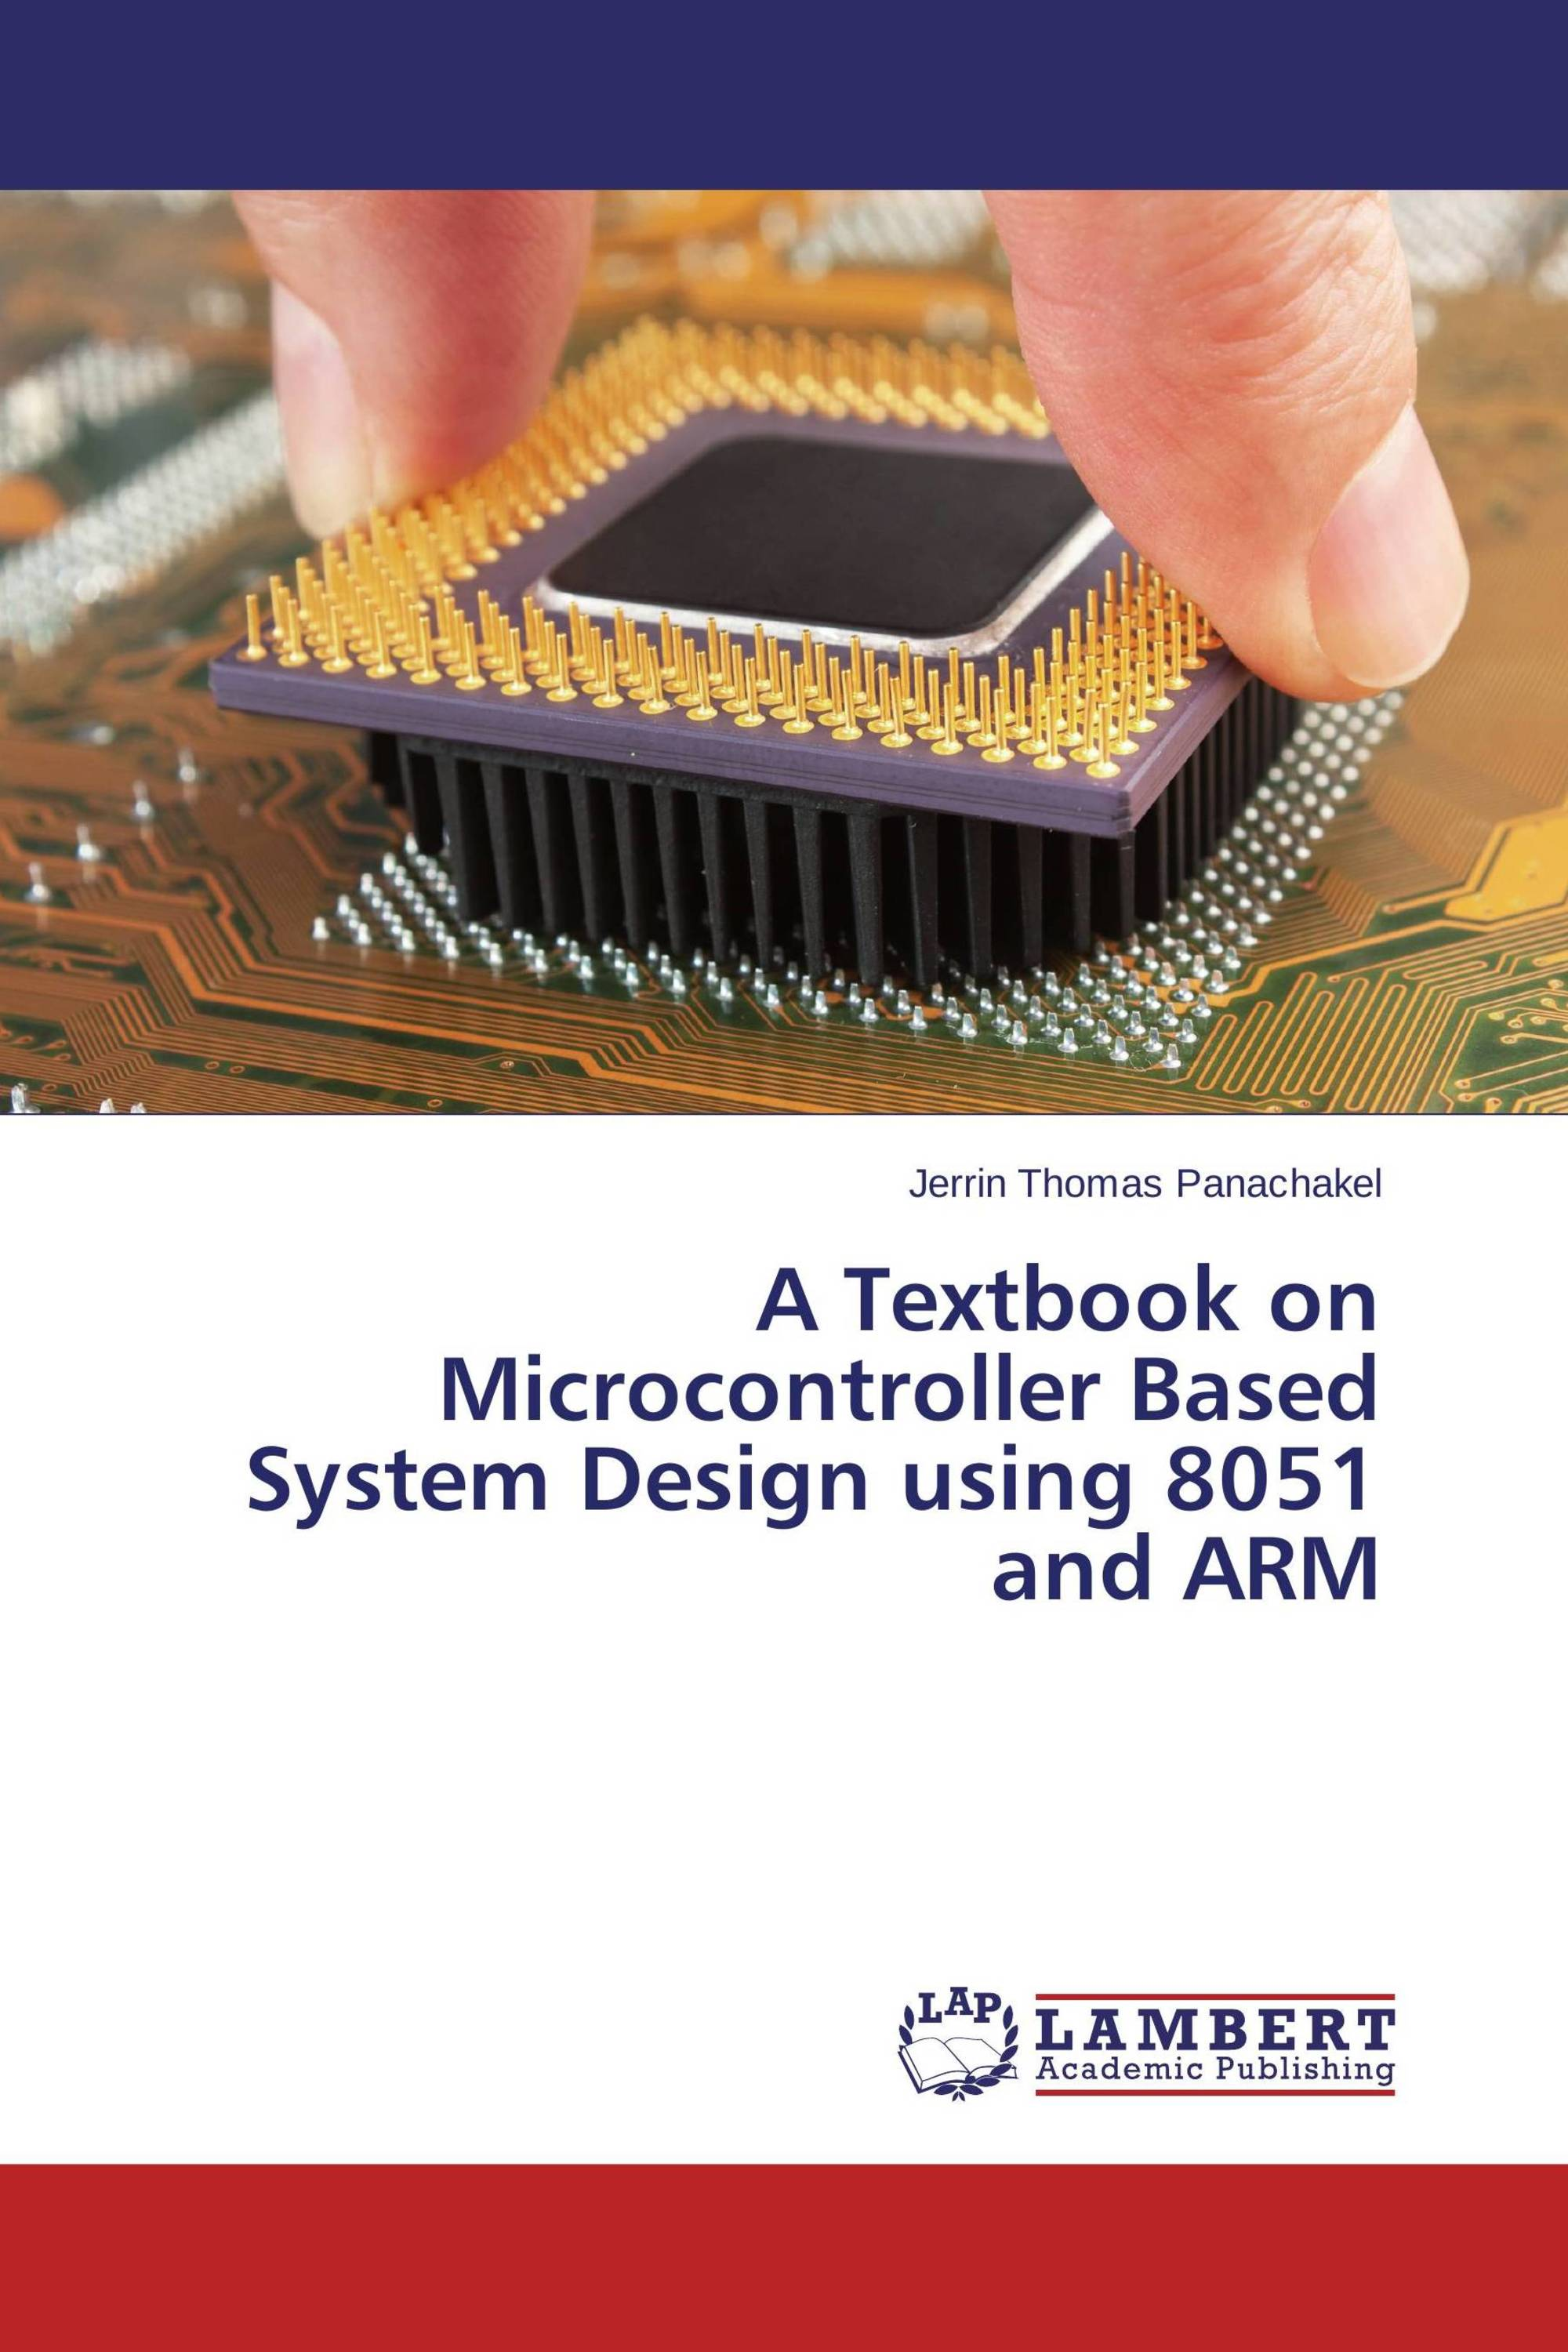 microcontroller based thesis The aim of this thesis is to make the heavelock autonomous, and capable of   is a microcontroller system based on hardware and software that is easy to use.